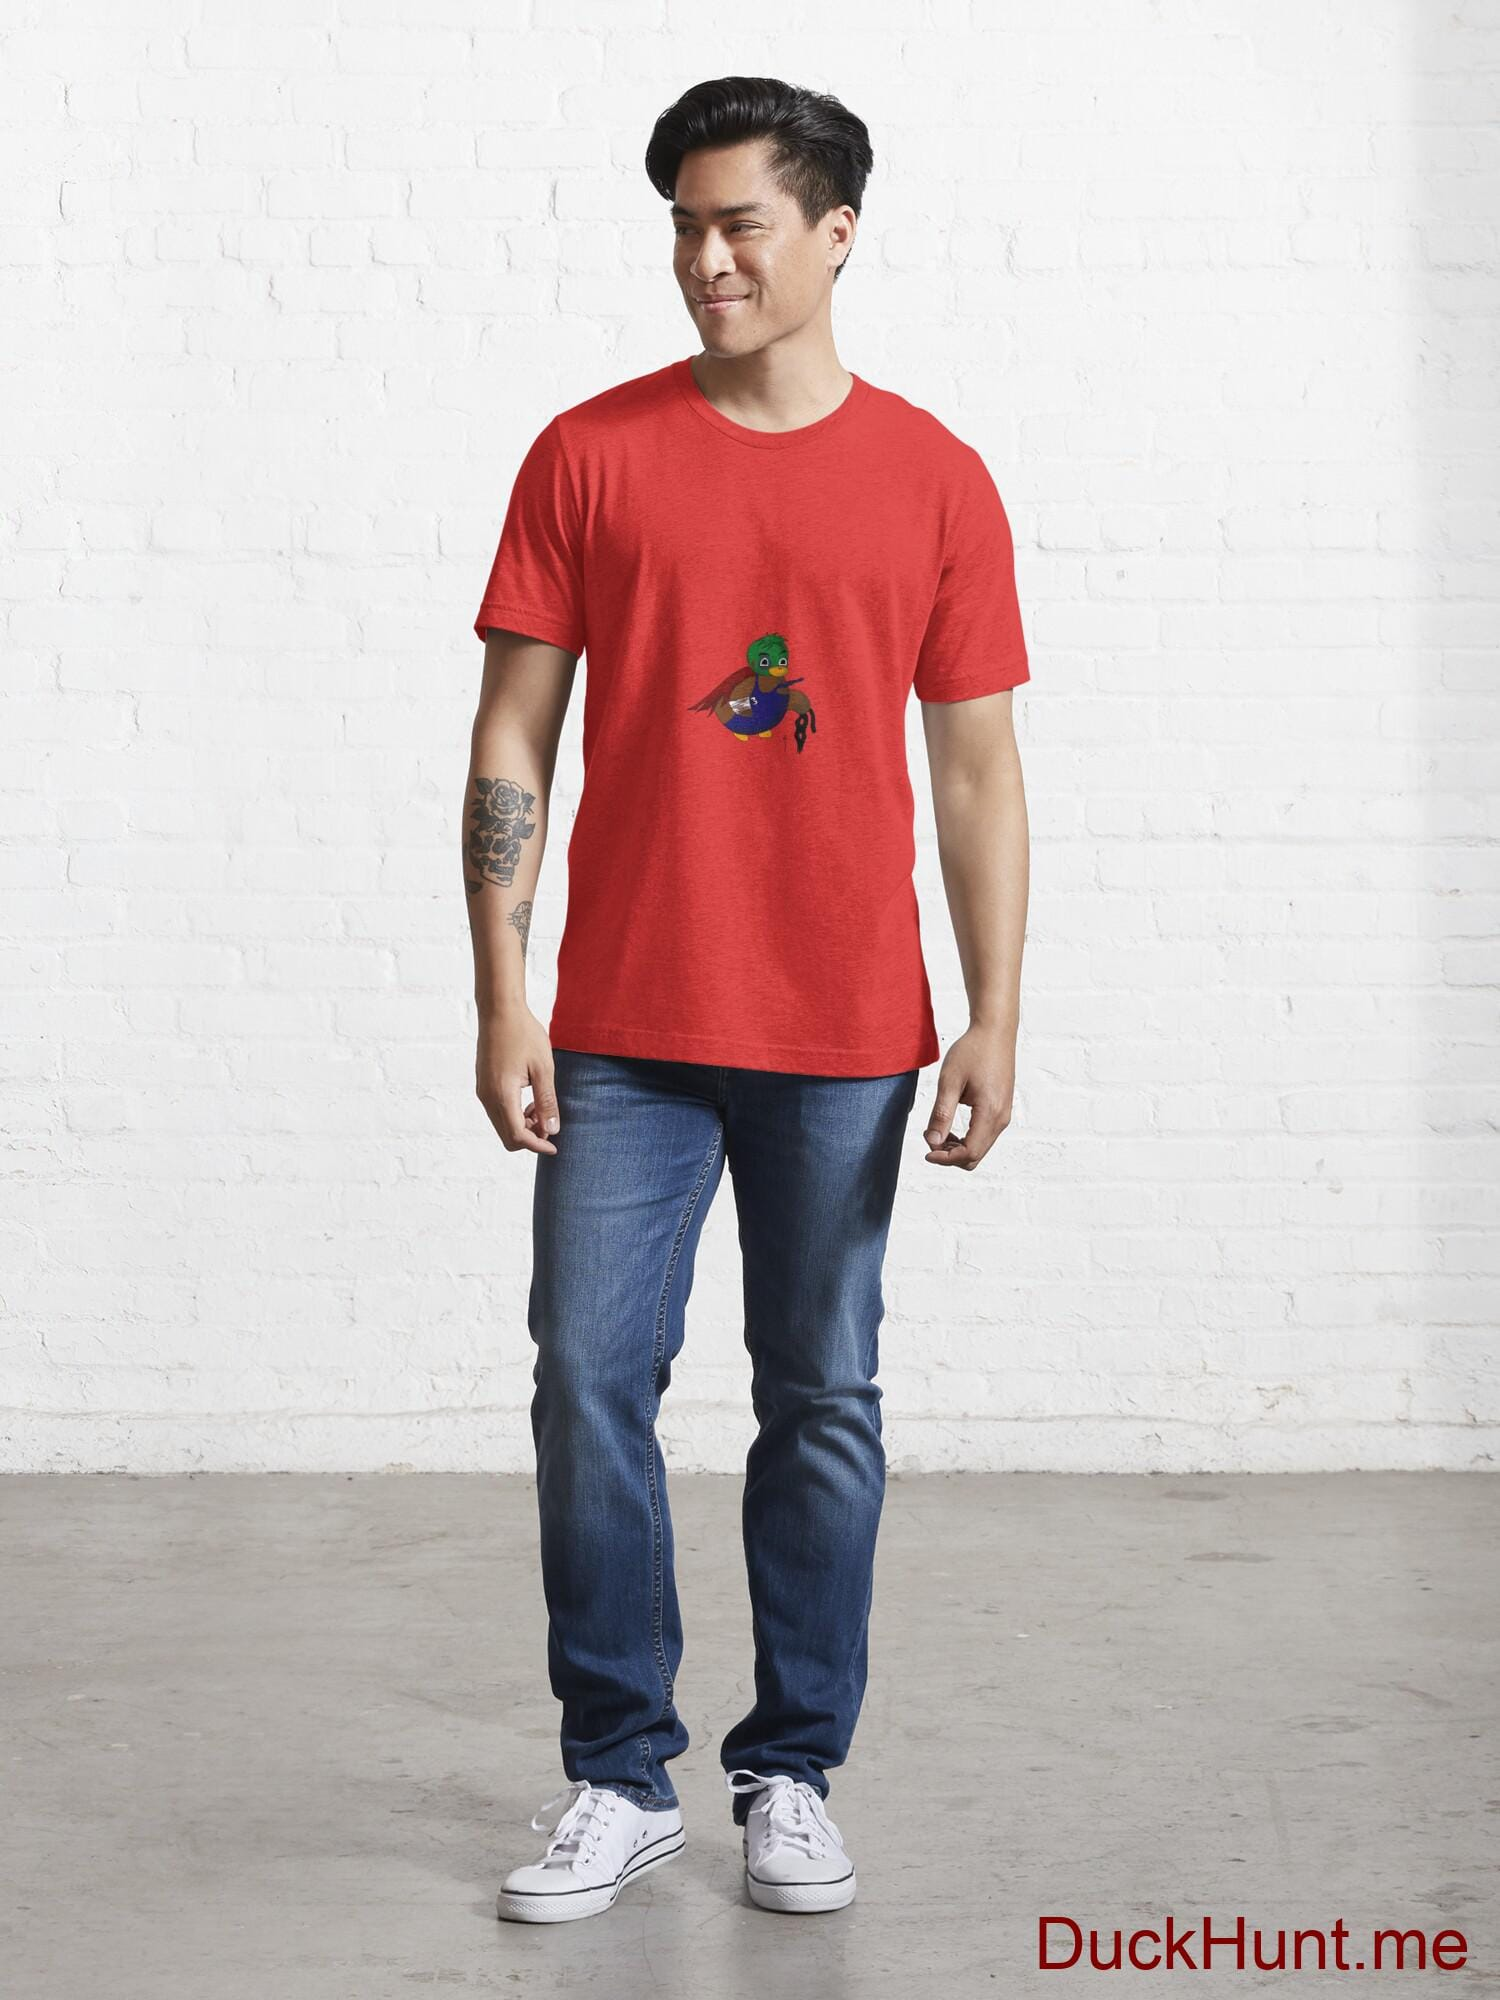 Dead DuckHunt Boss (smokeless) Red Essential T-Shirt (Front printed) alternative image 4